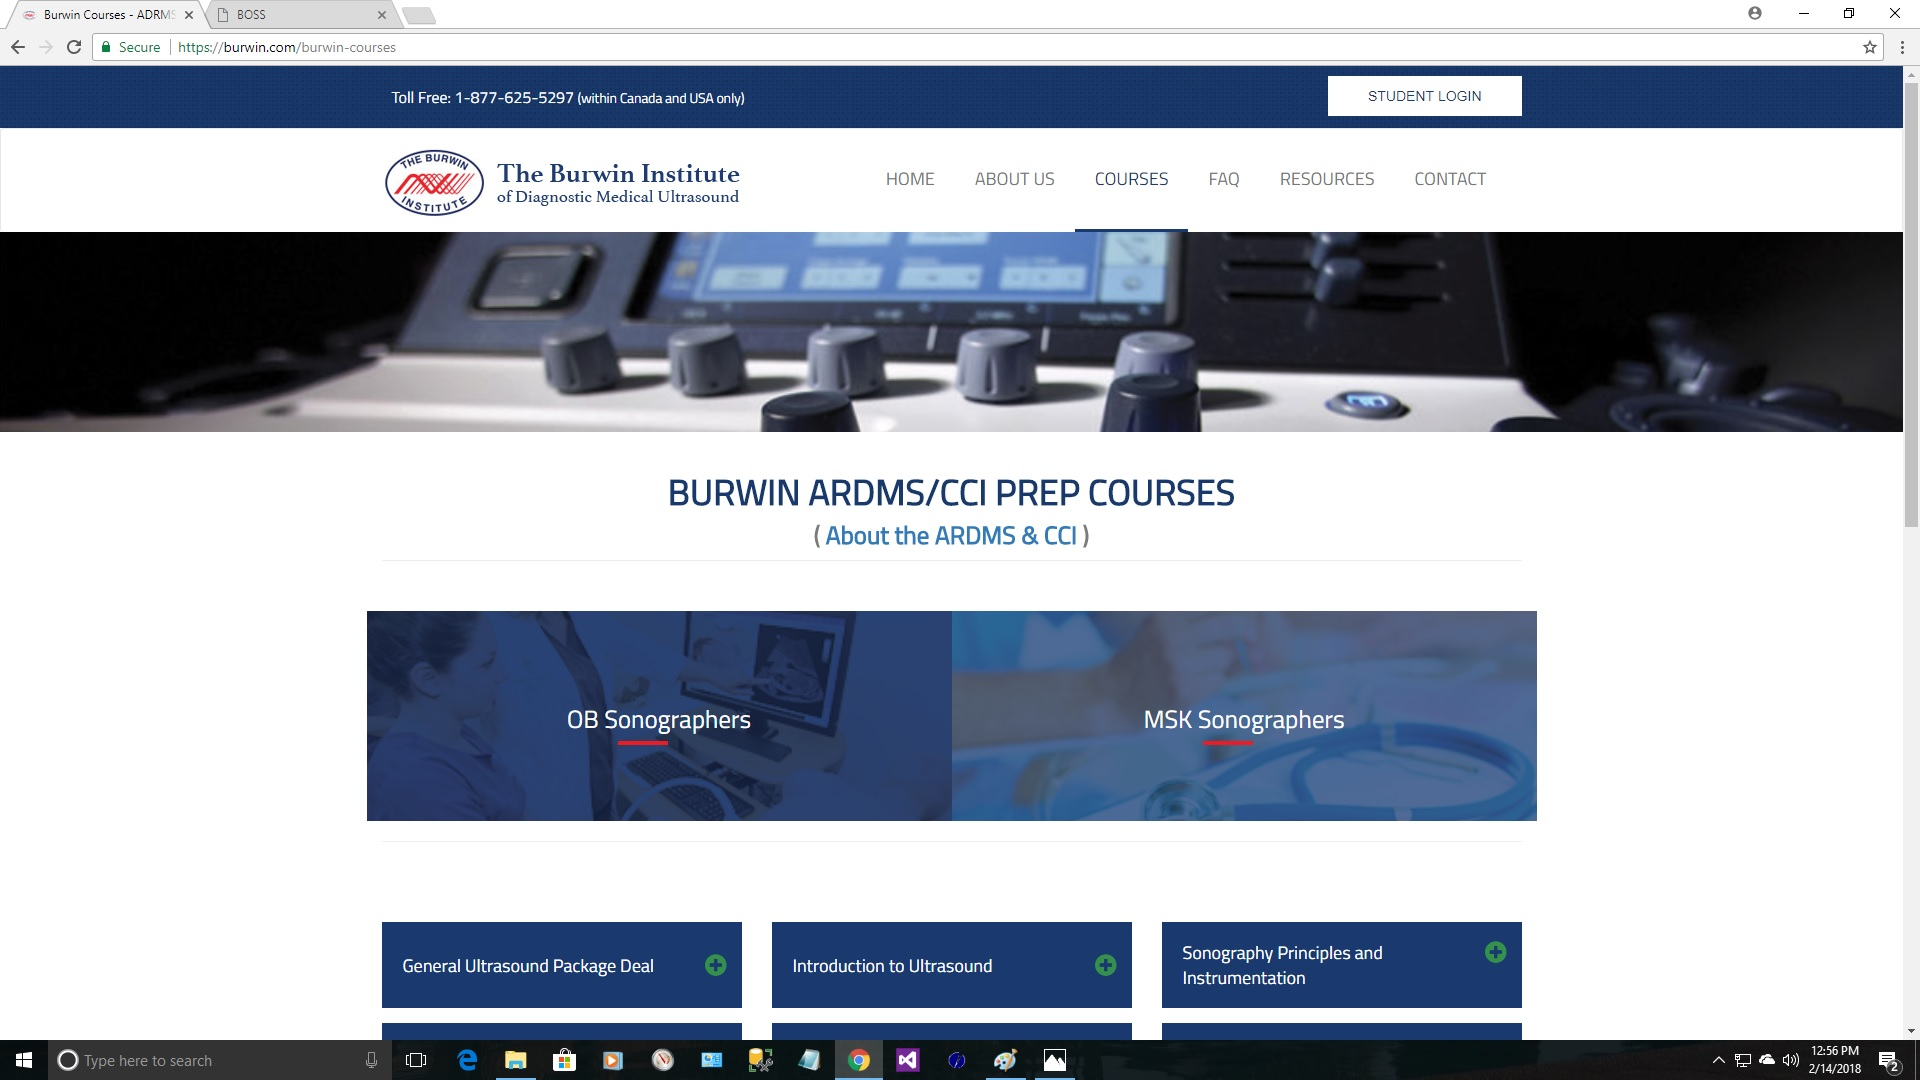 BOSS - Burwin Online Student System